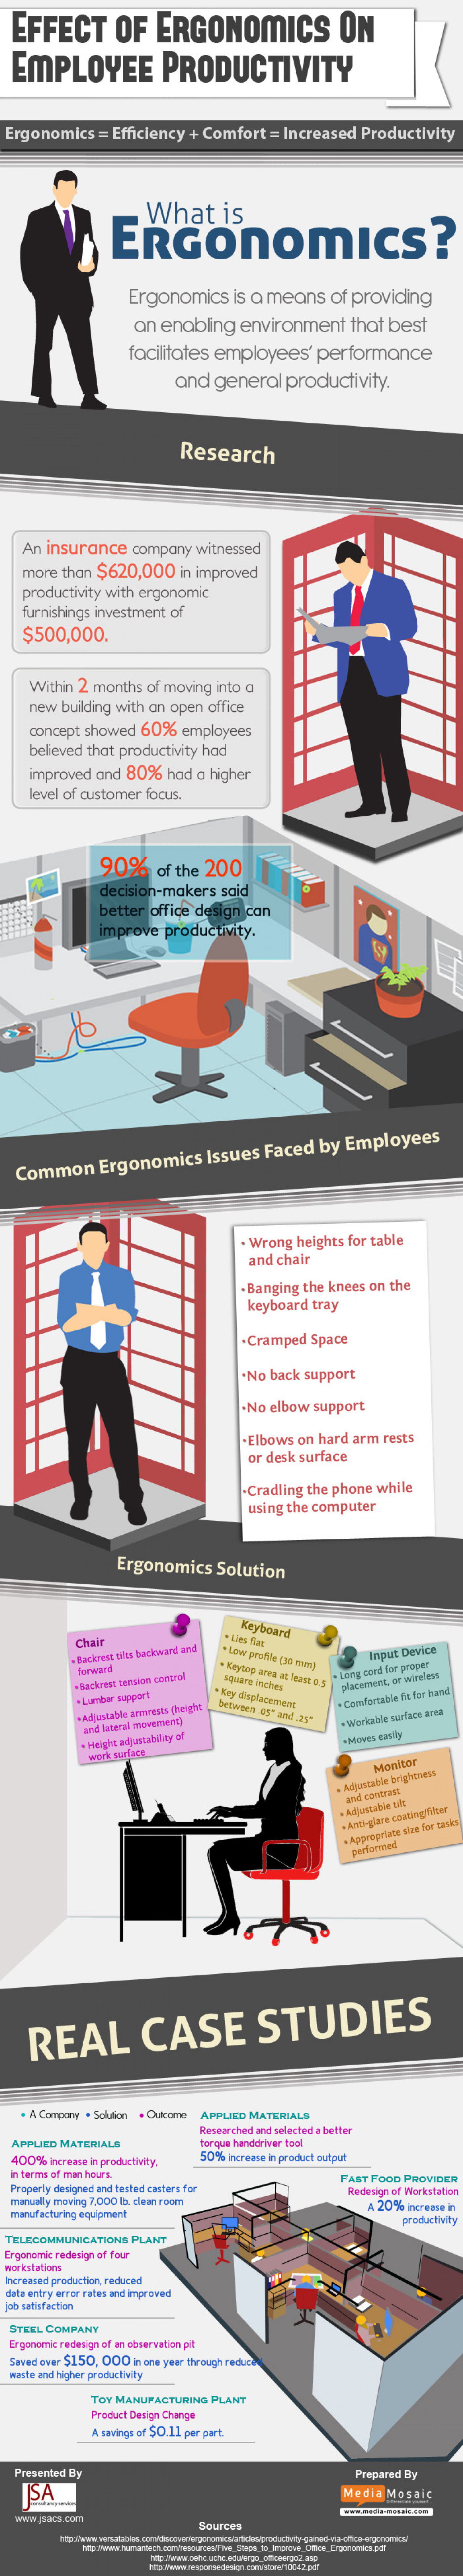 Effect of Ergonomics on Employee Productivity Infographic